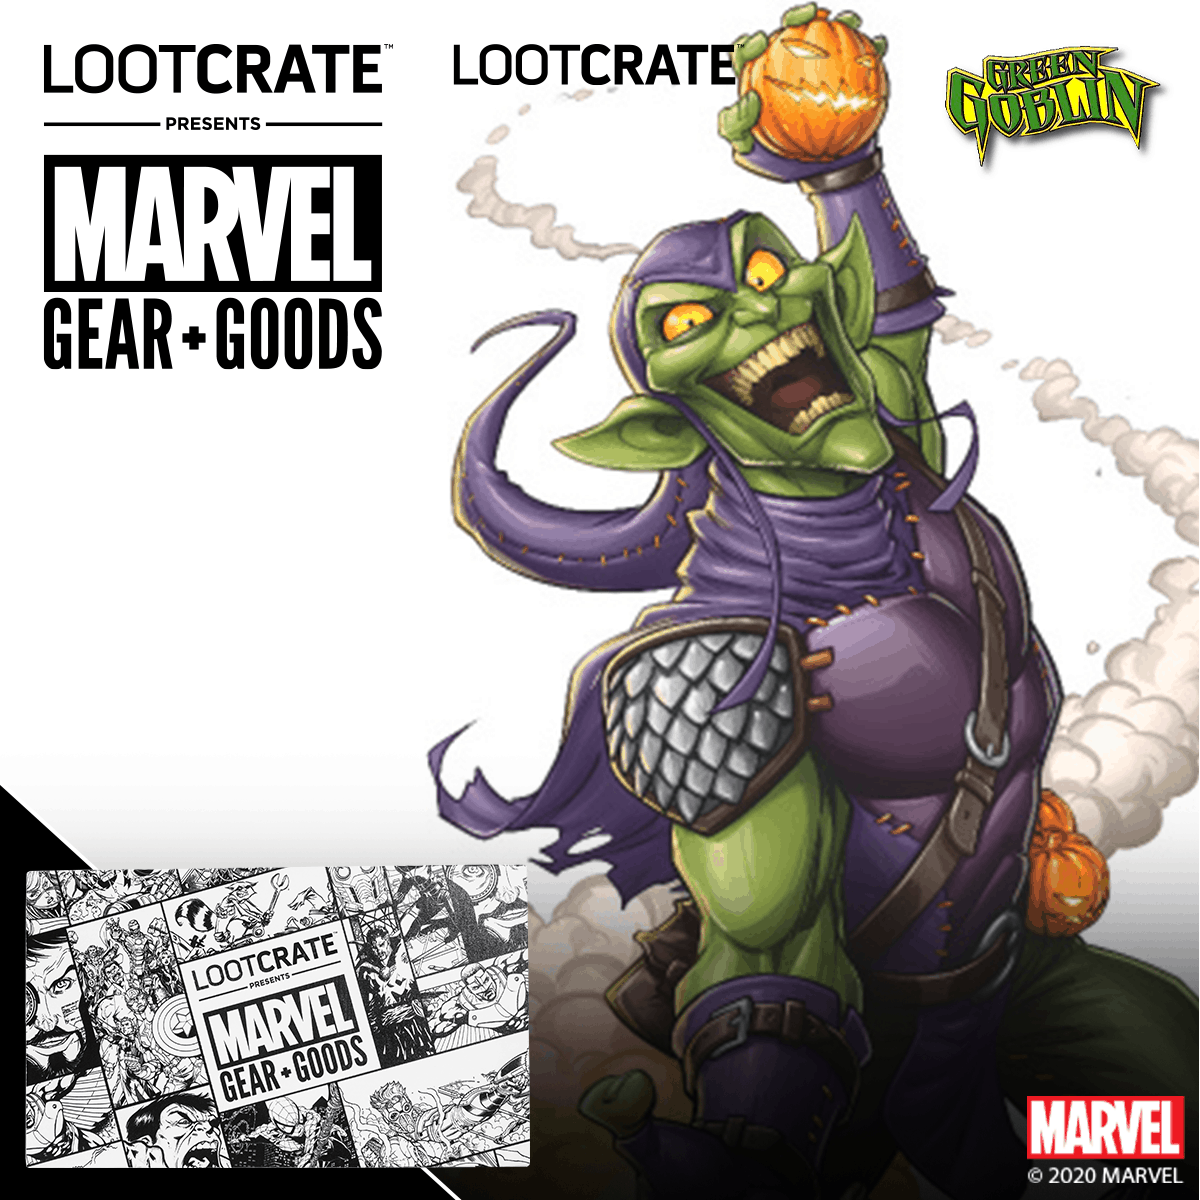 HULK SMASHES NEW MARVEL GEAR & GOODS LOOT CRATE! 2